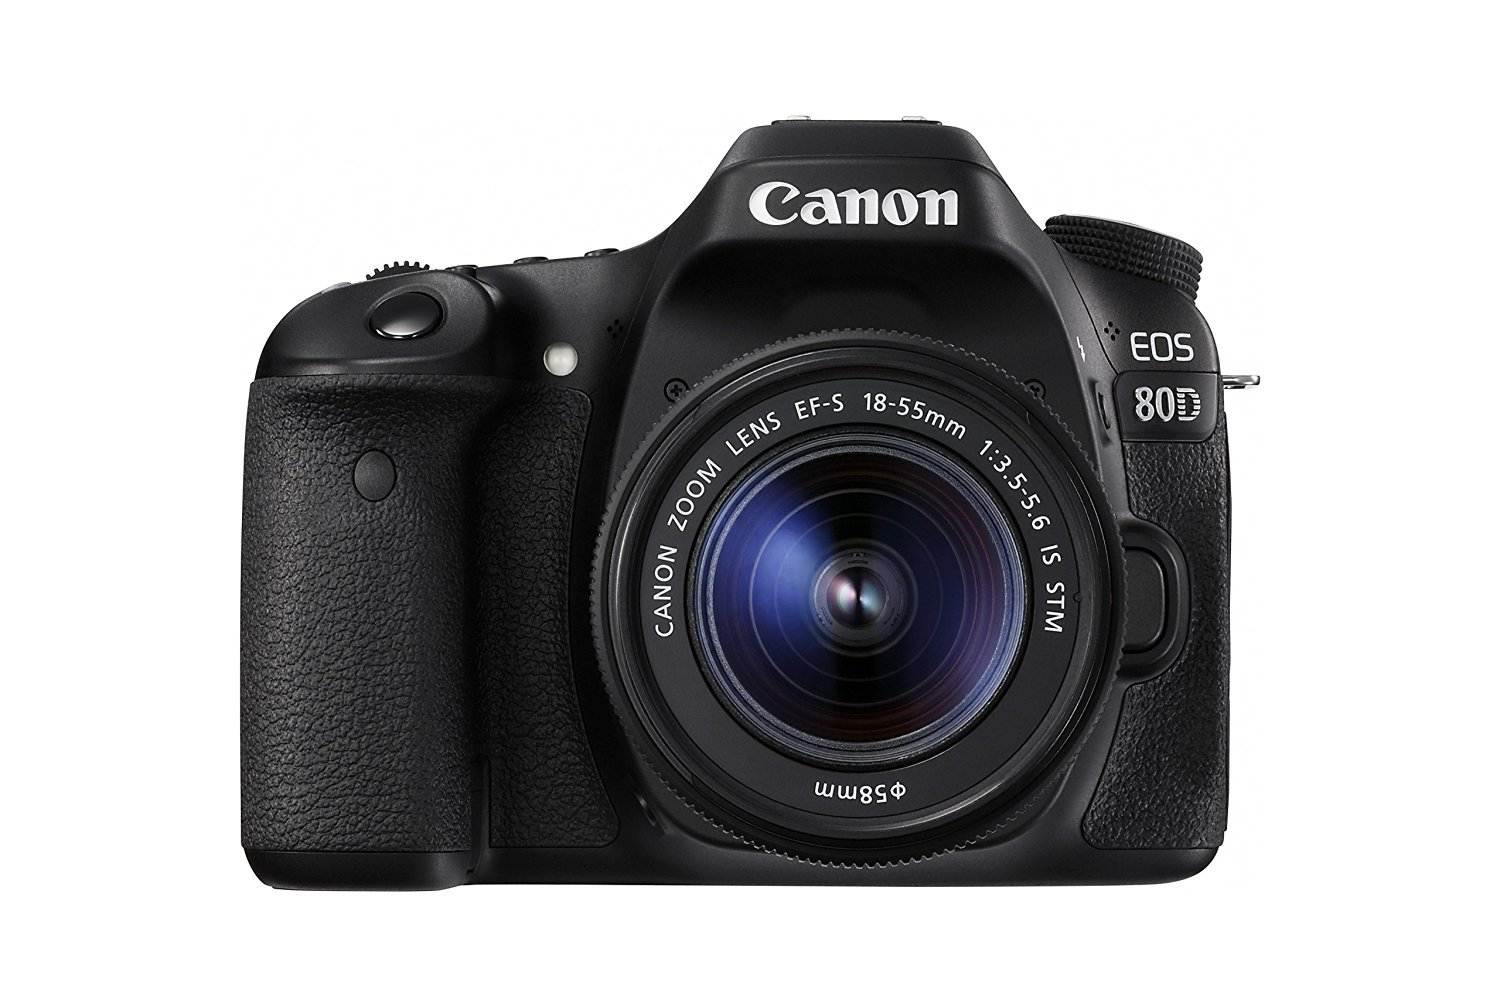 Canon EOS 80D Digital SLR Kit with EF-S 18-55mm f/3.5-5.6 Image Stabilization STM Lens - Black (Certified Refurbished) by Canon